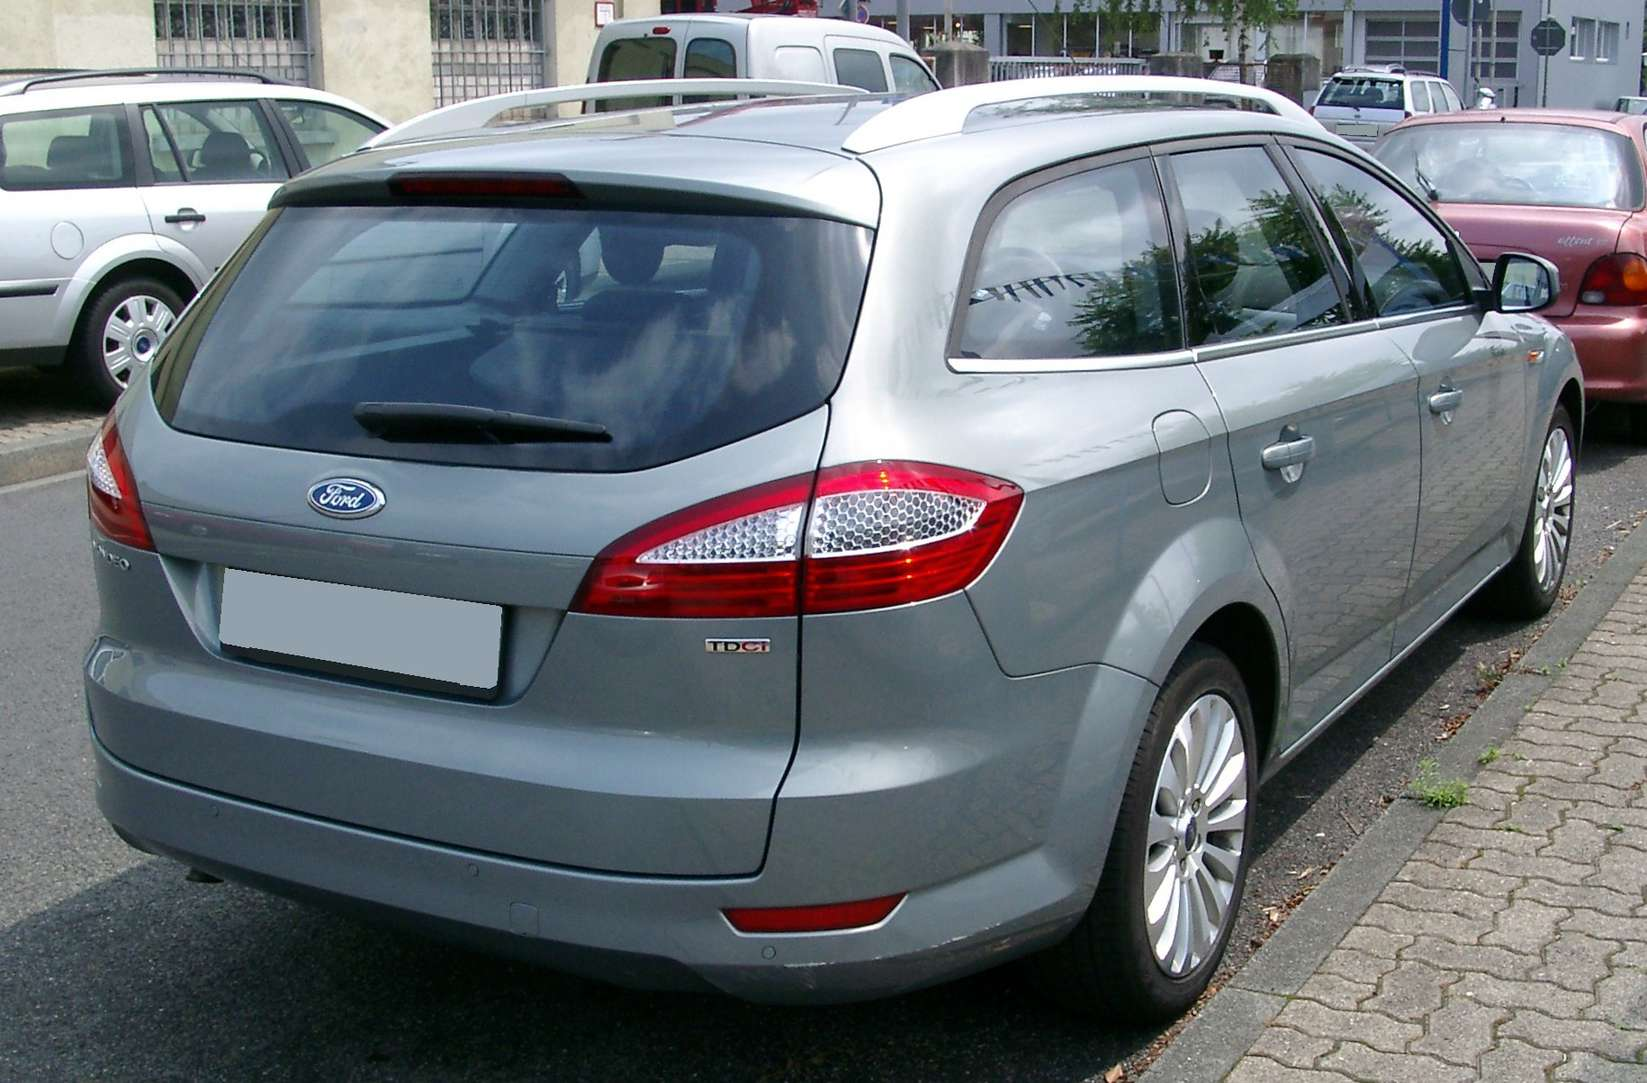 Ford Mondeo Turnier #9066002